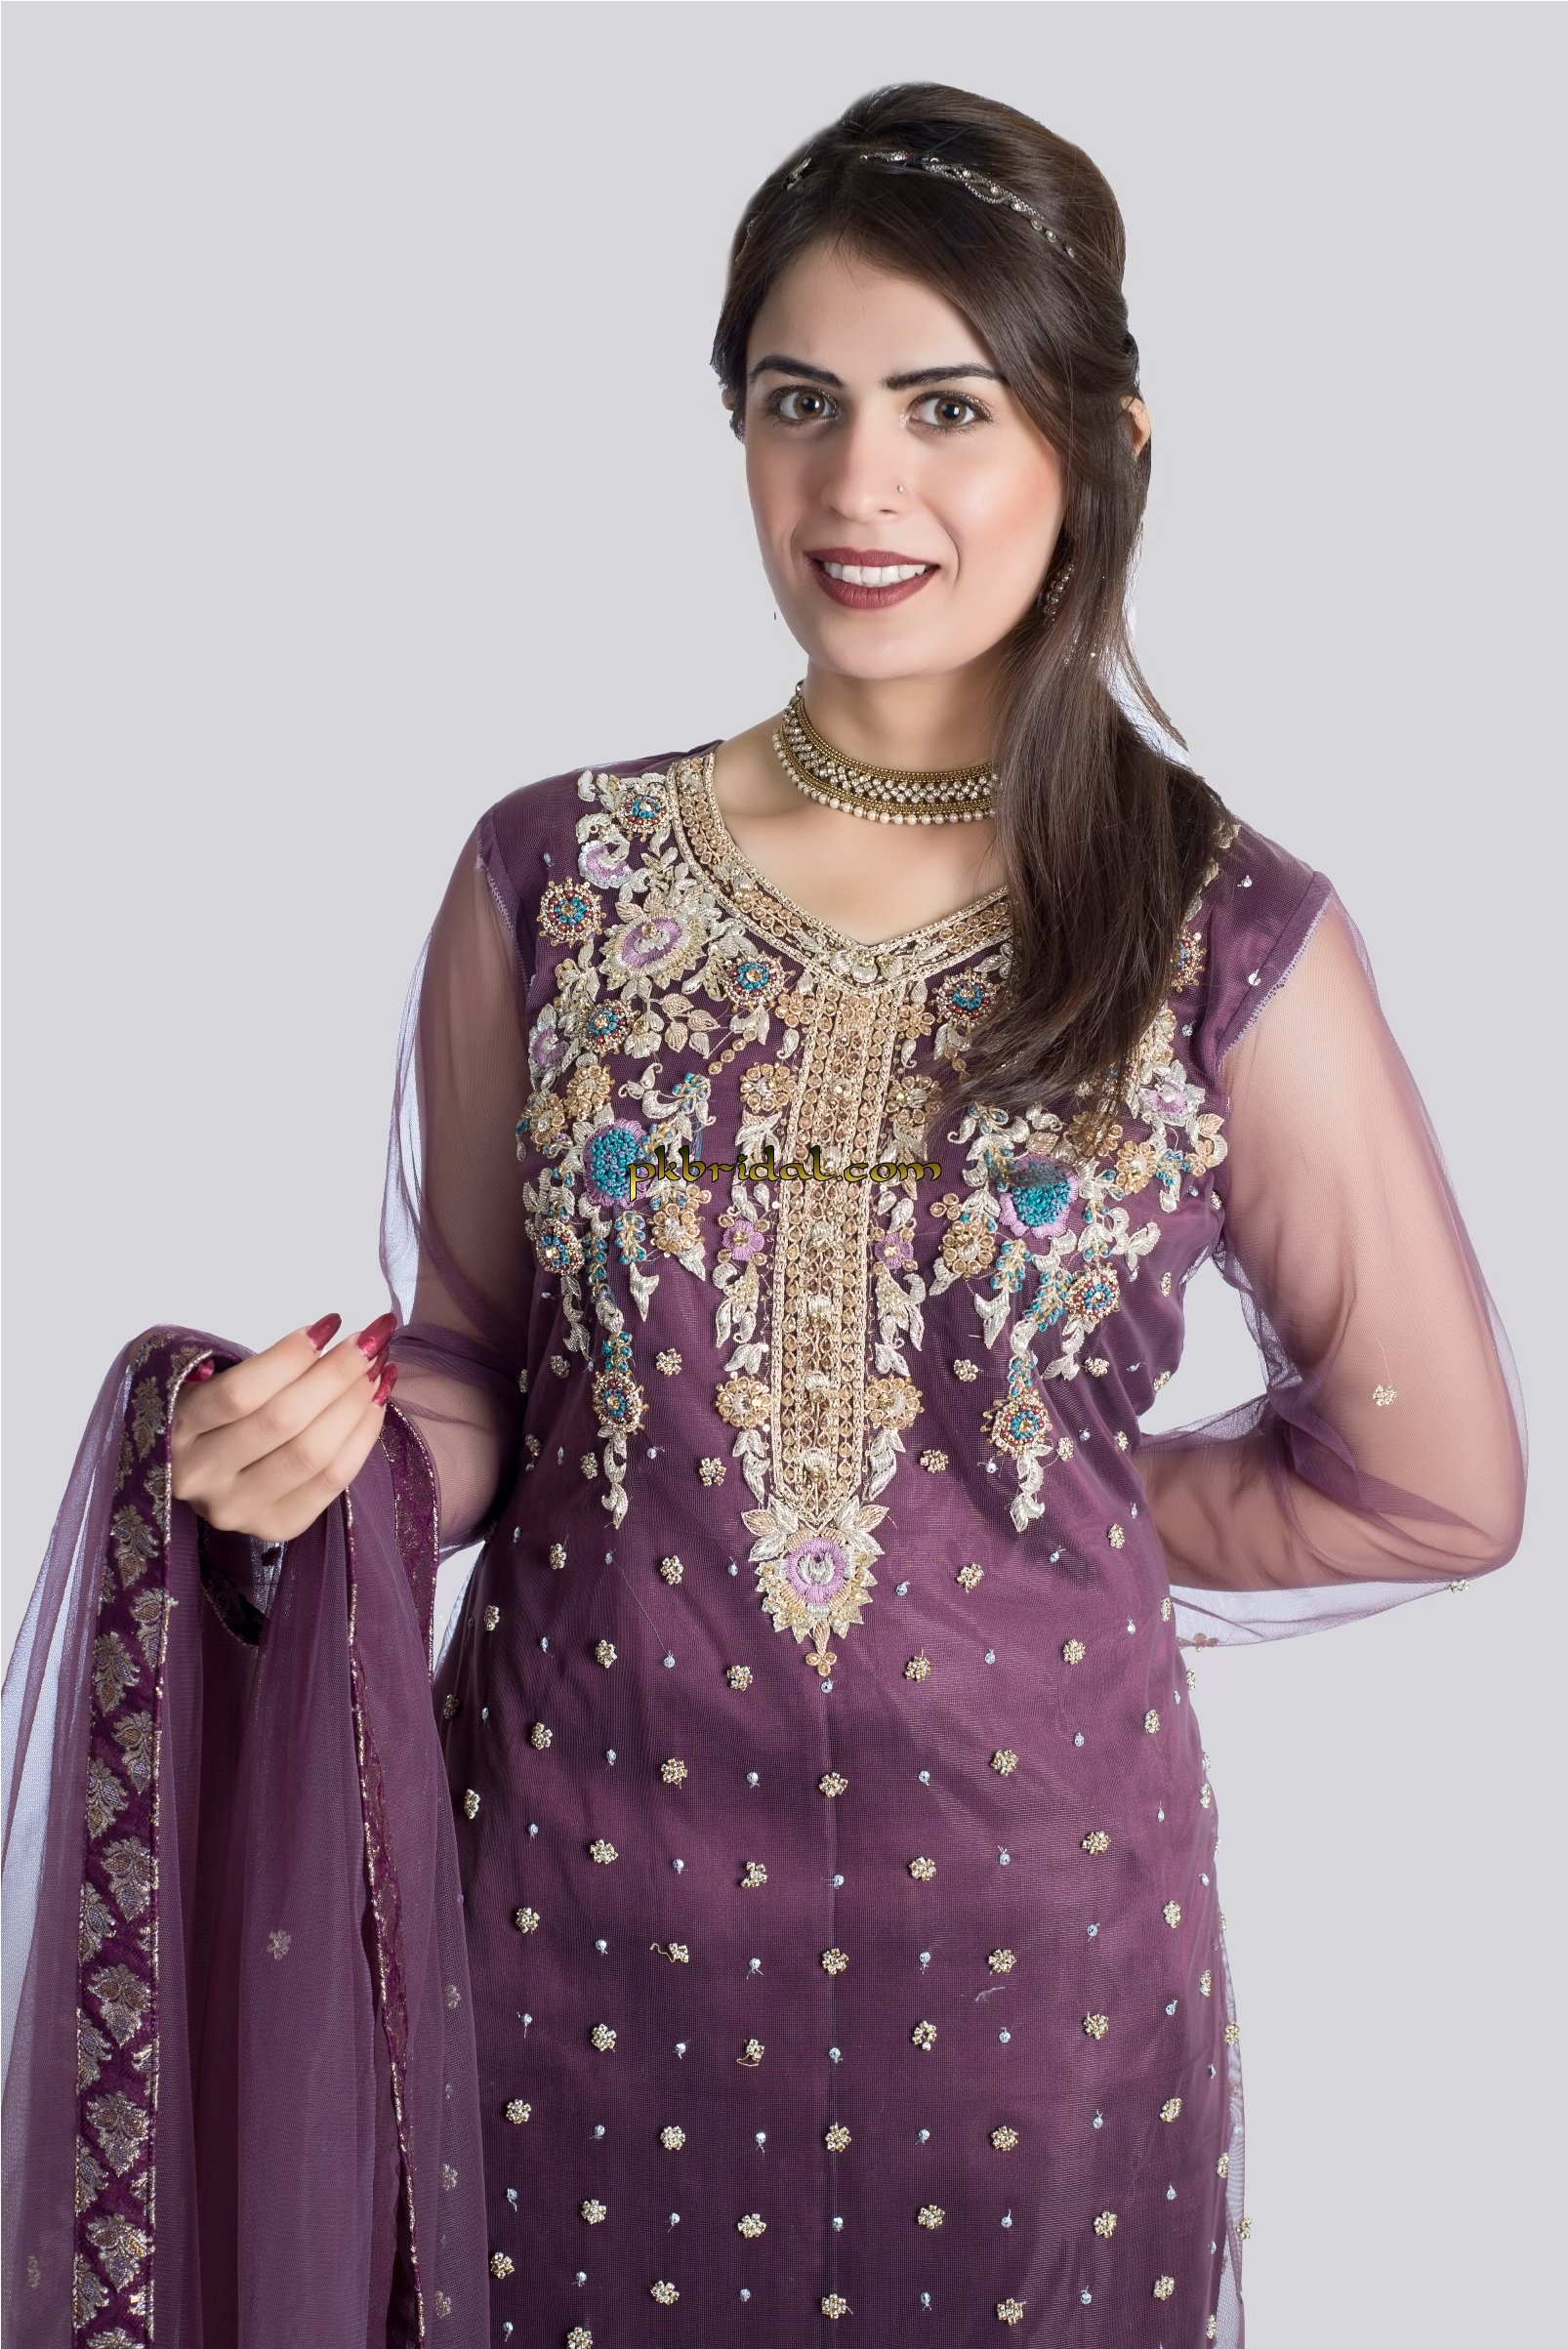 baari-hand-embroidered-dresses-19